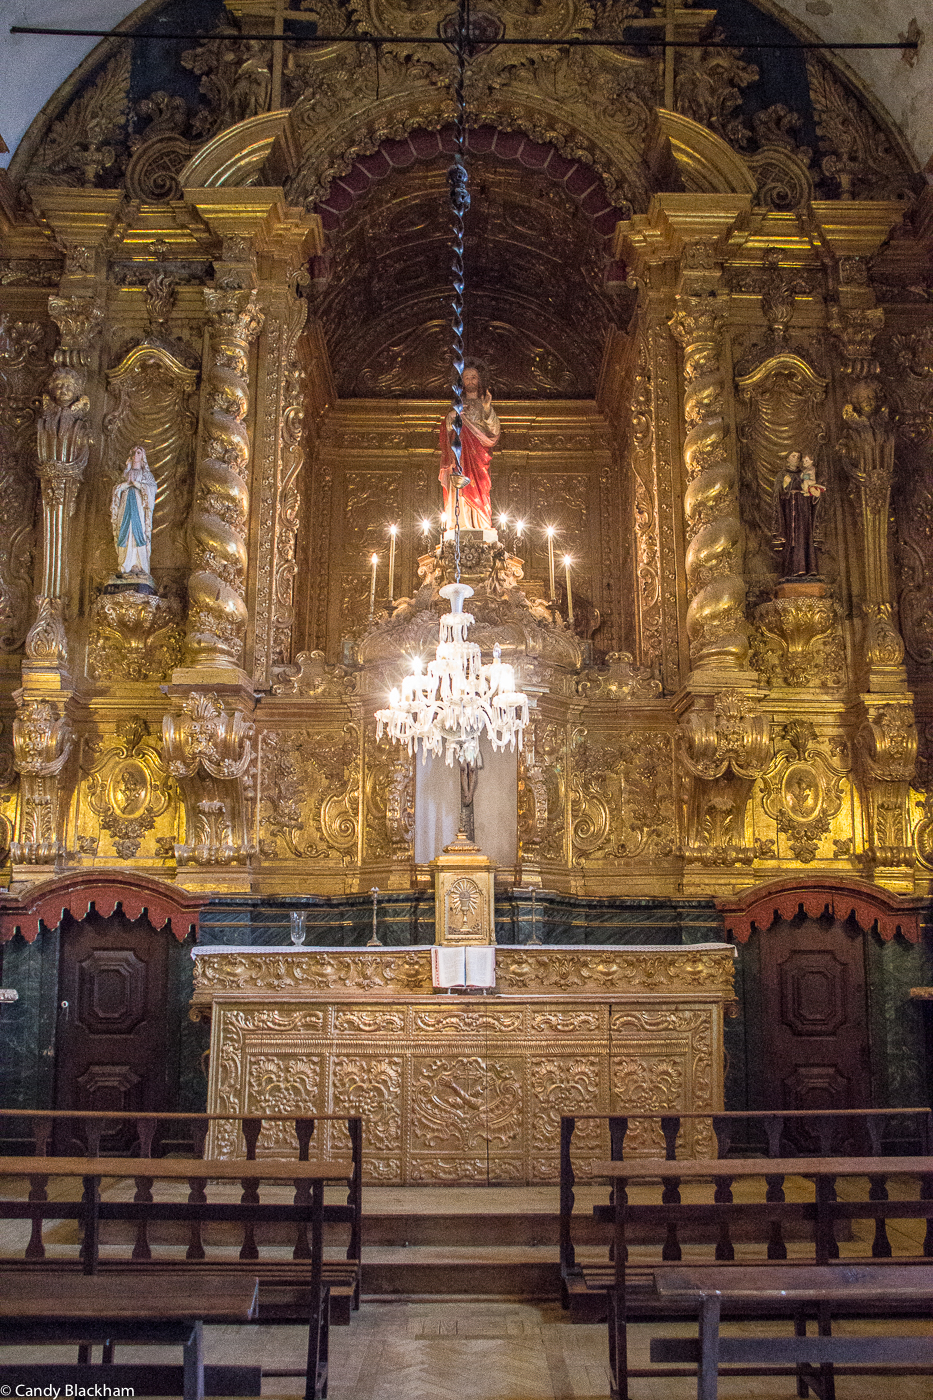 The gold-plated altars taken from the Monastery of St Francis, and now in the Church of Nossa Senhora da Piedade